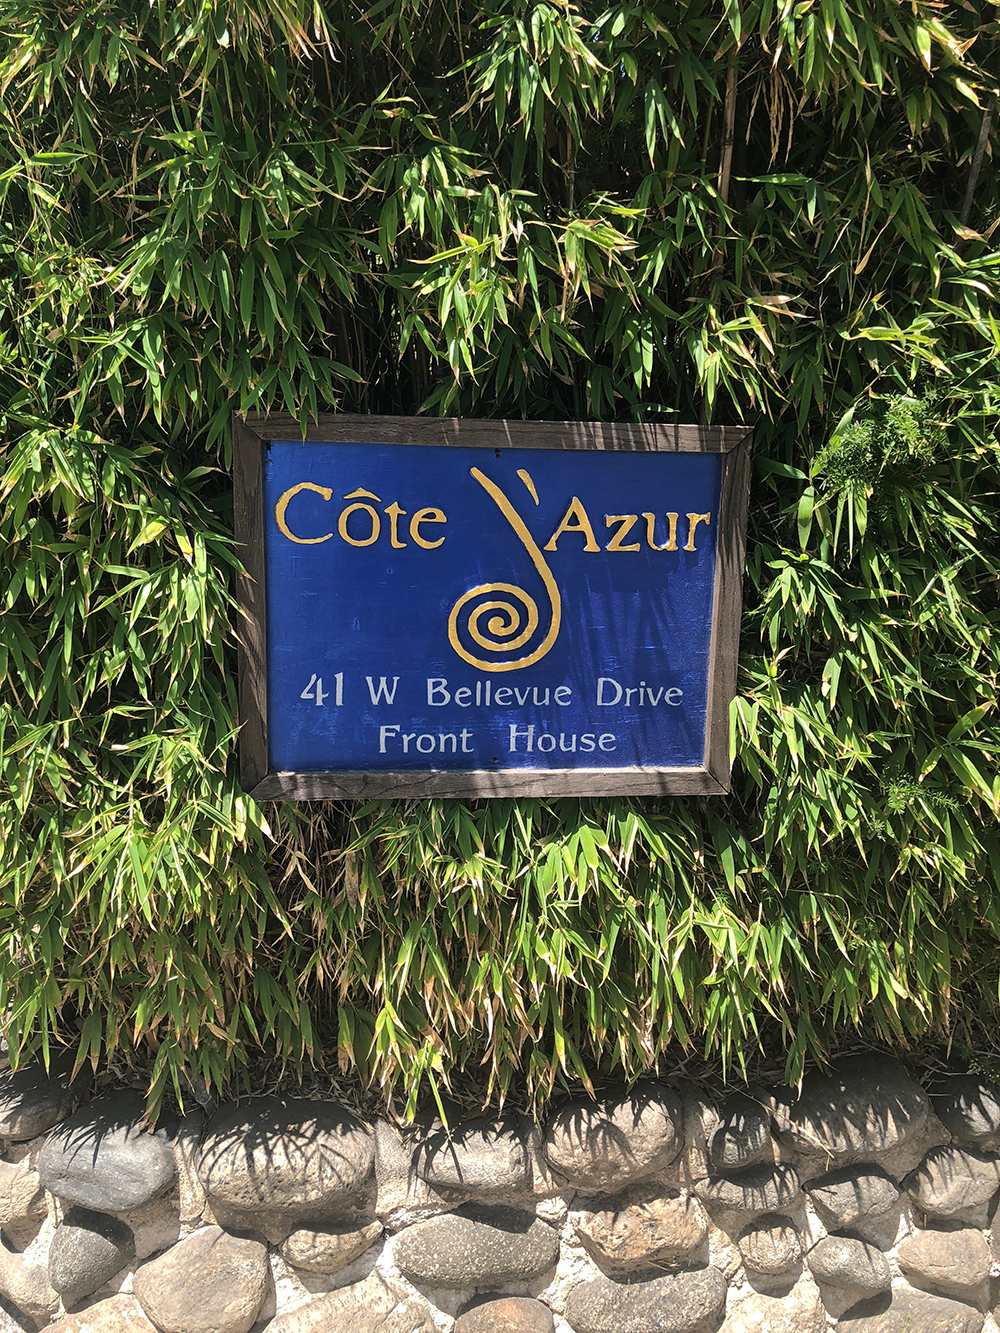 Cote d'Azur is located in a beautiful historical home in Pasadena, California.